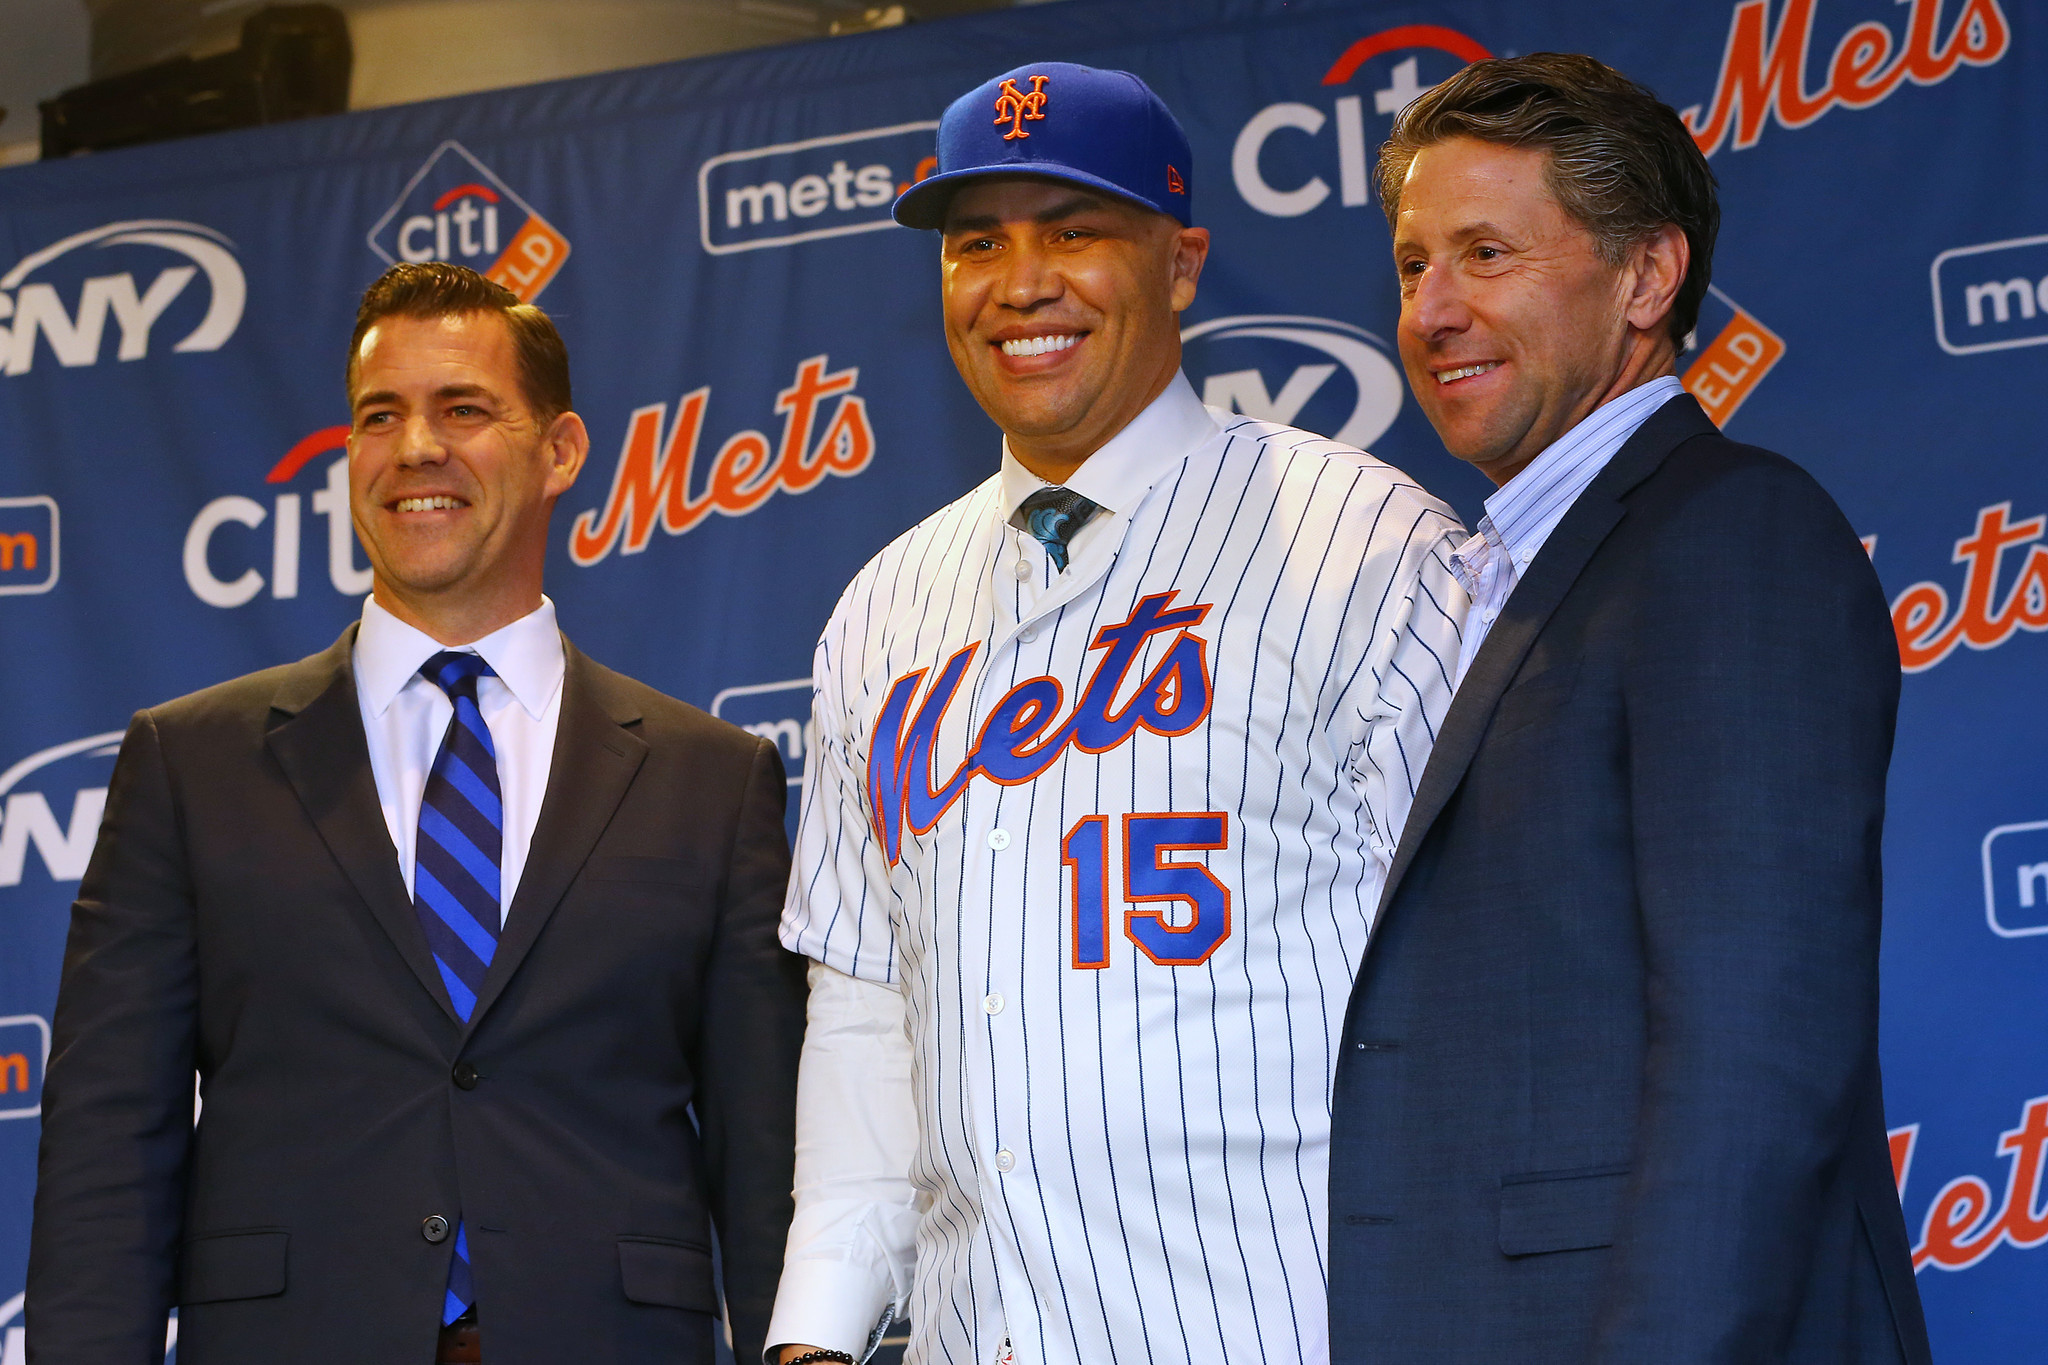 Jeff Wilpon wanted nothing to do with questions about Carlos Beltran's job status